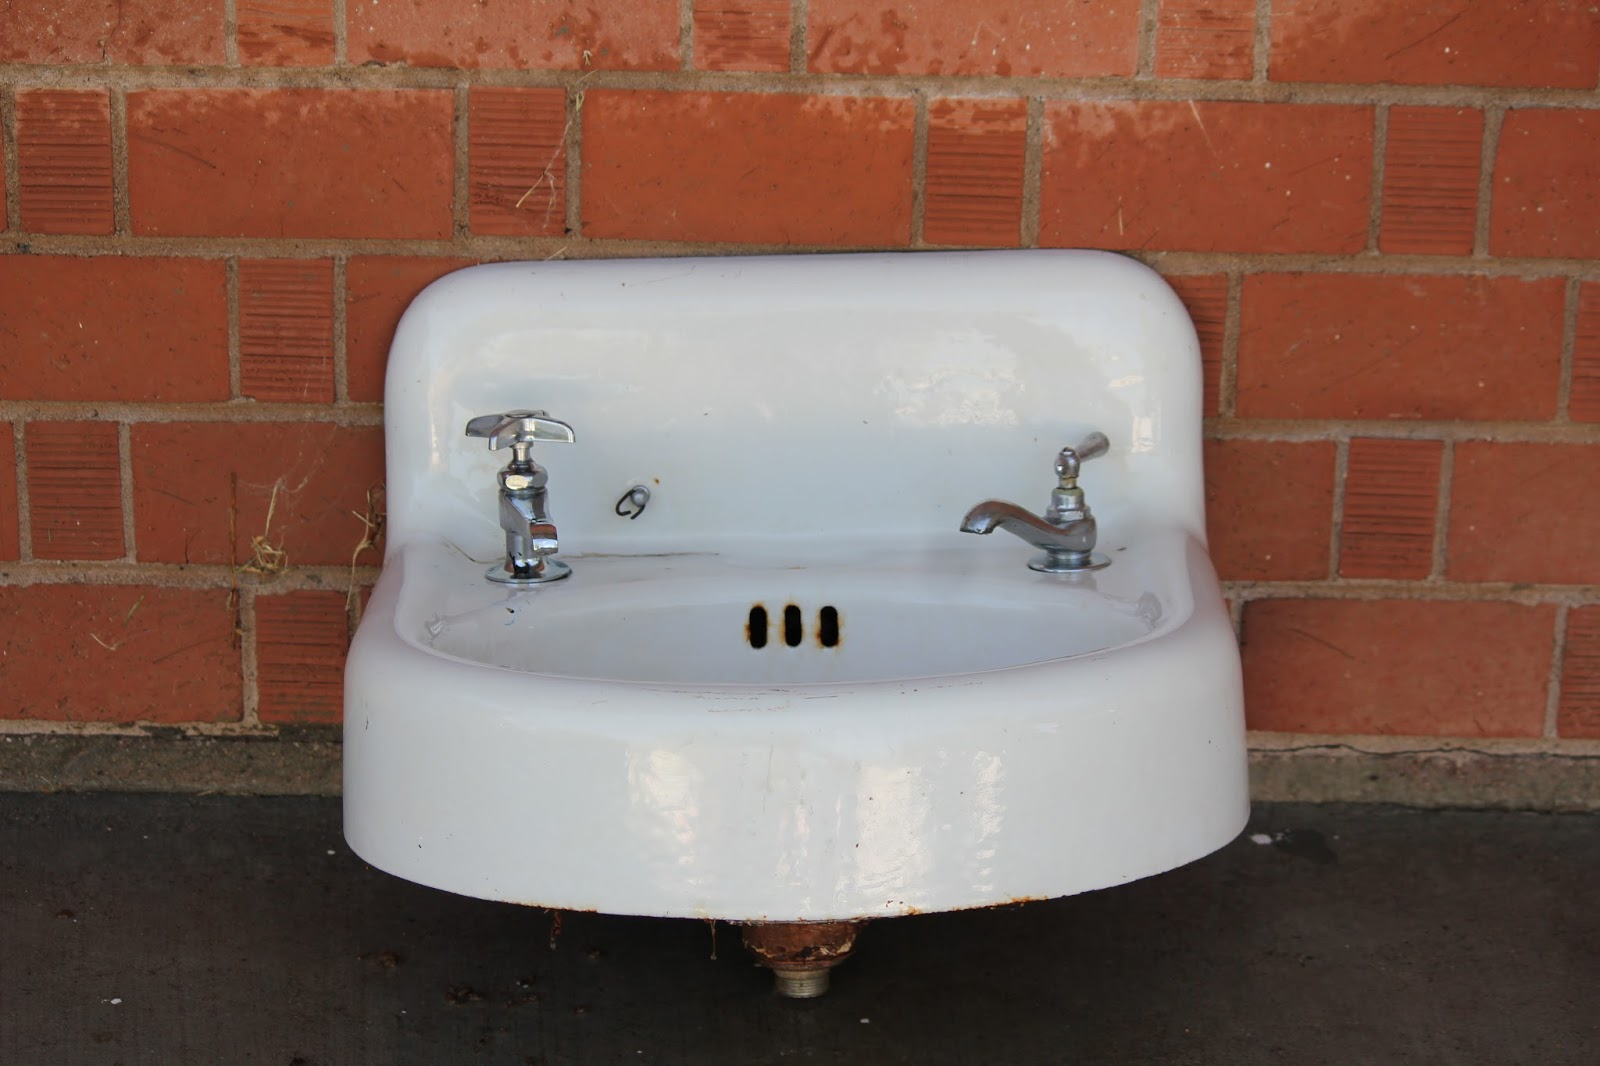 used kitchen sinks for sale tiny remodel clutterbuggz online yard cast iron sink bathroom